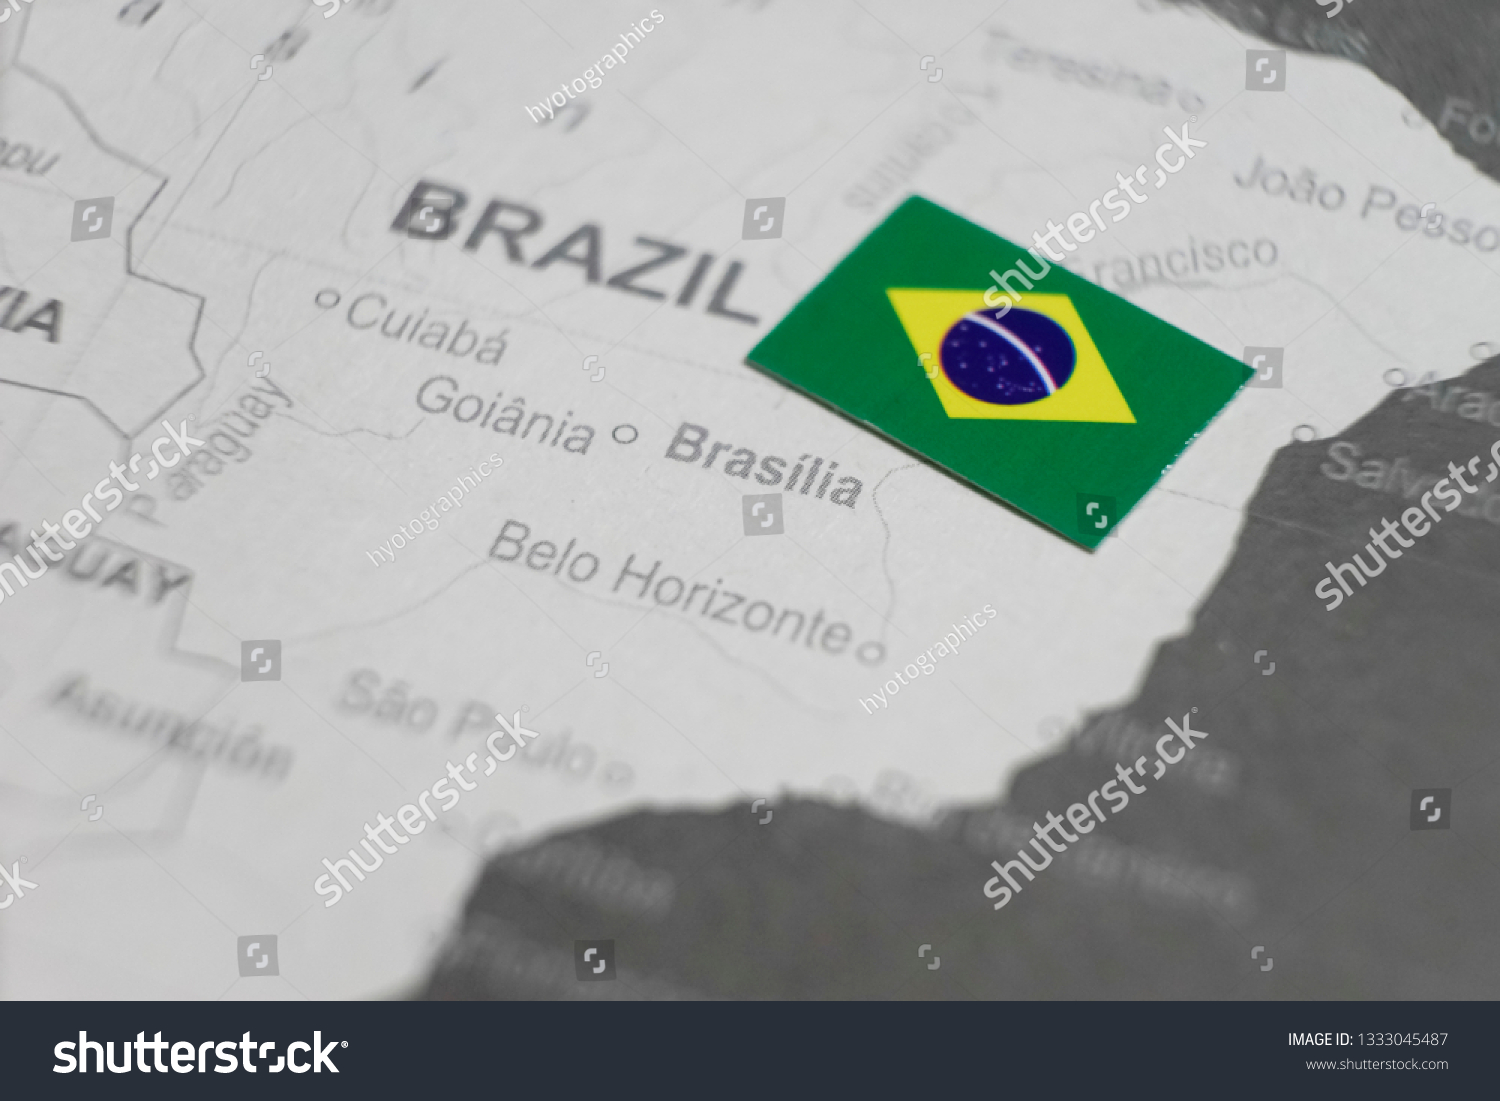 Picture of: Brazilian Flag Placed On Brasilia Map Stock Photo Edit Now 1333045487